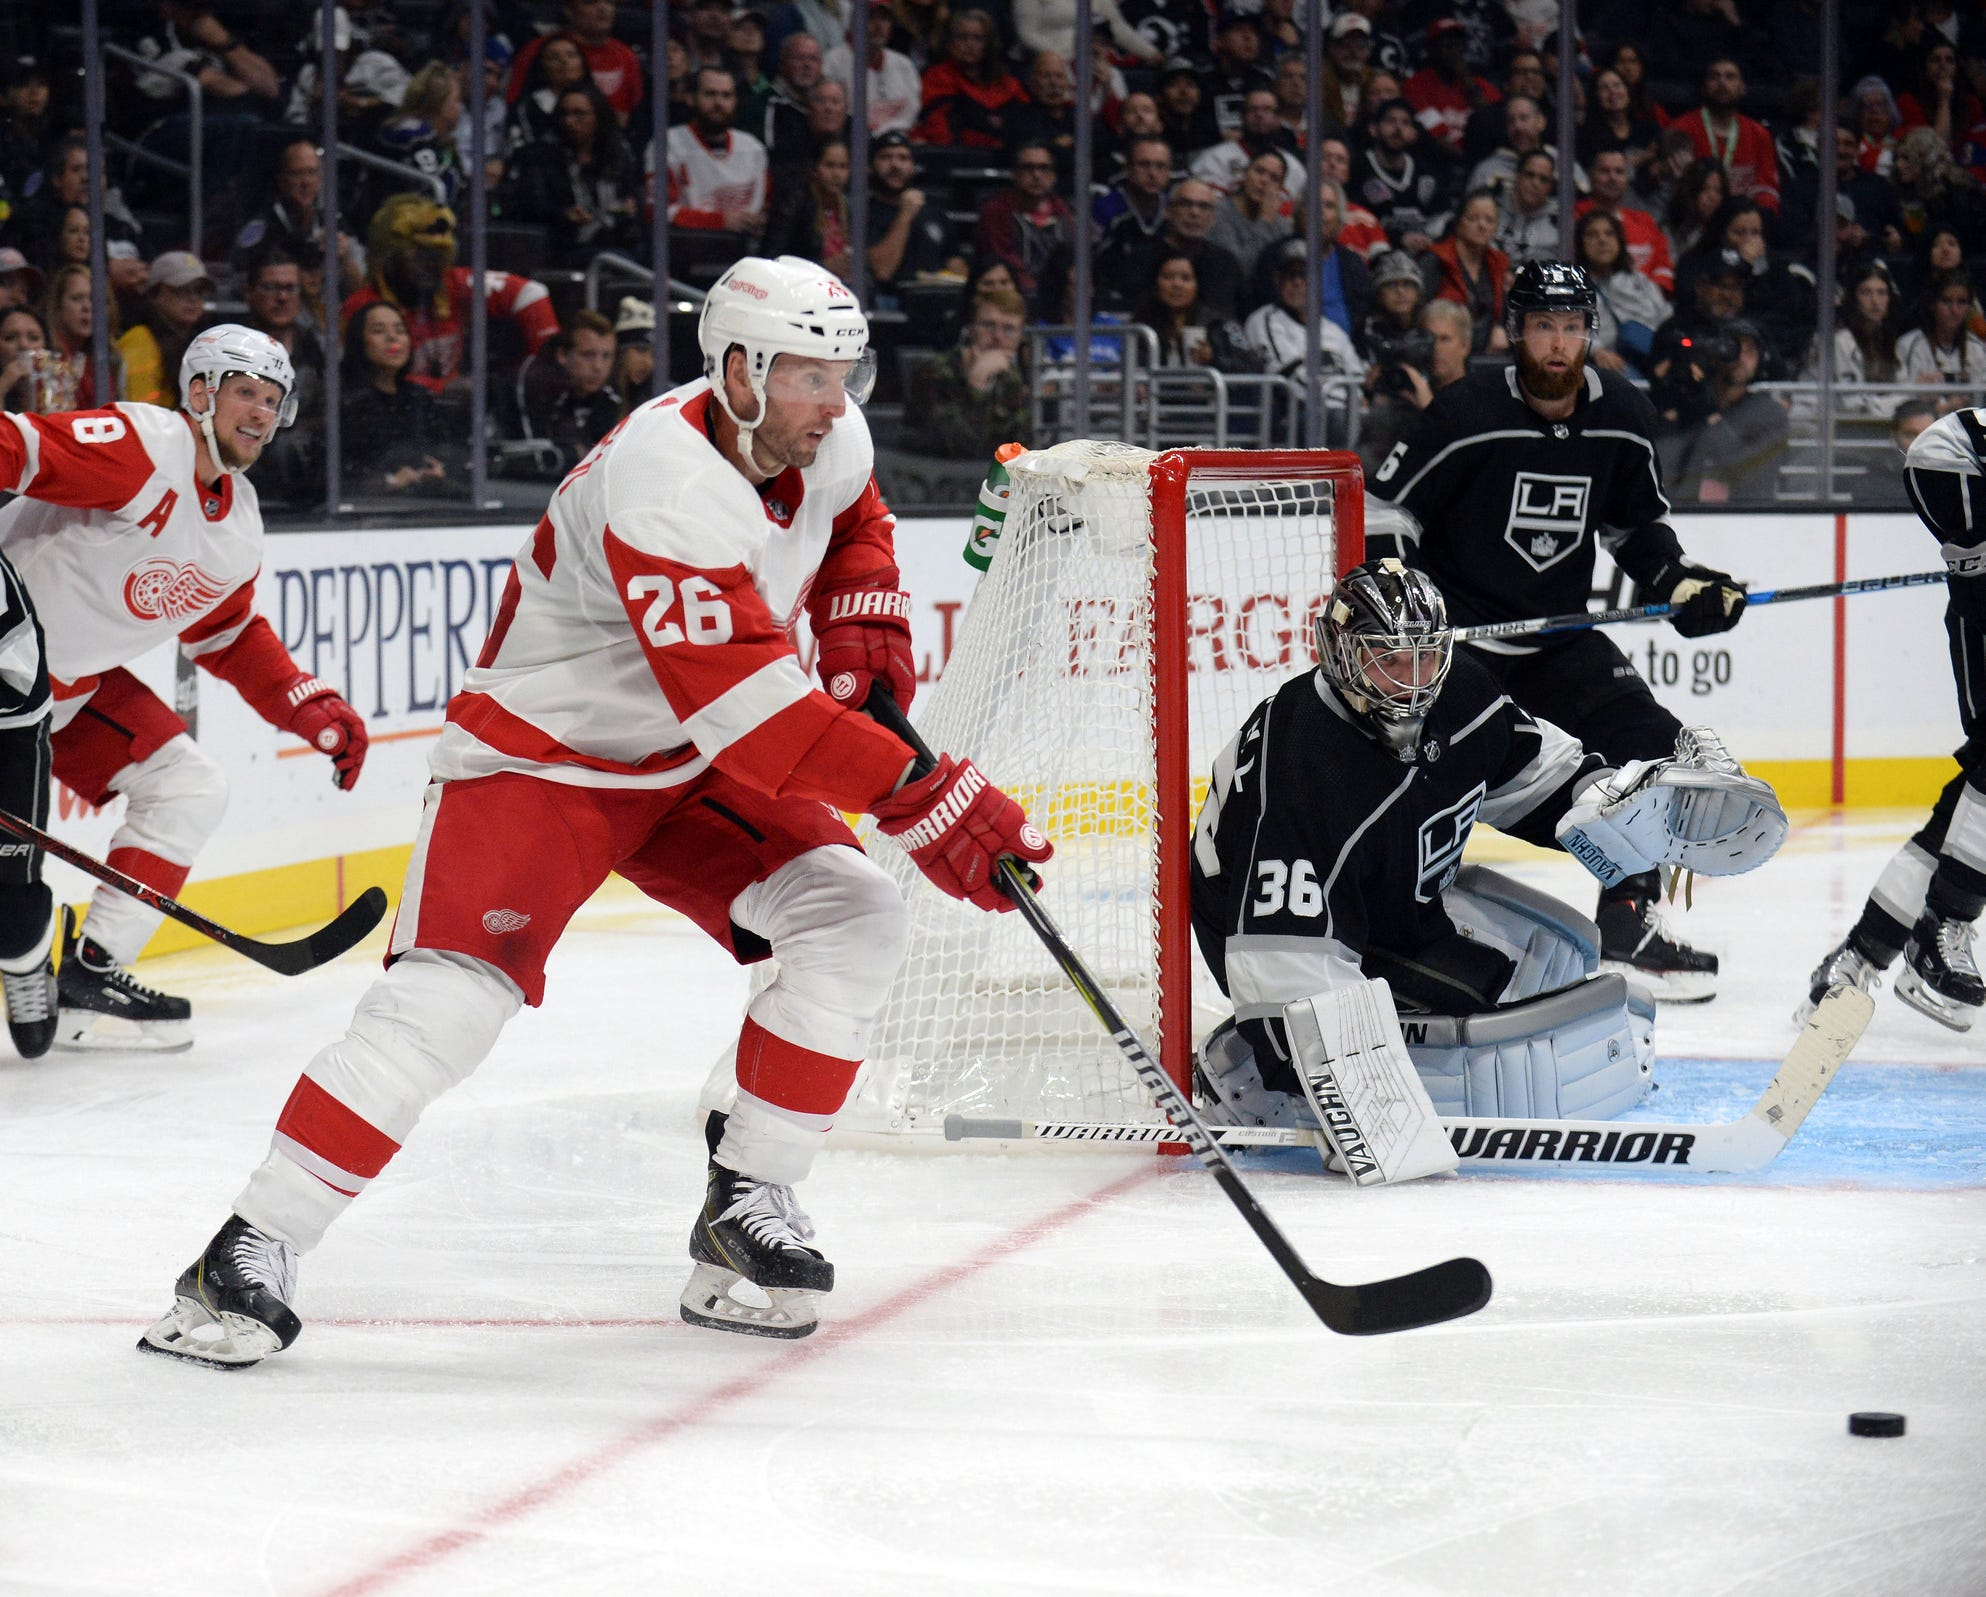 Nhl Detroit Red Wings At Los Angeles Kings